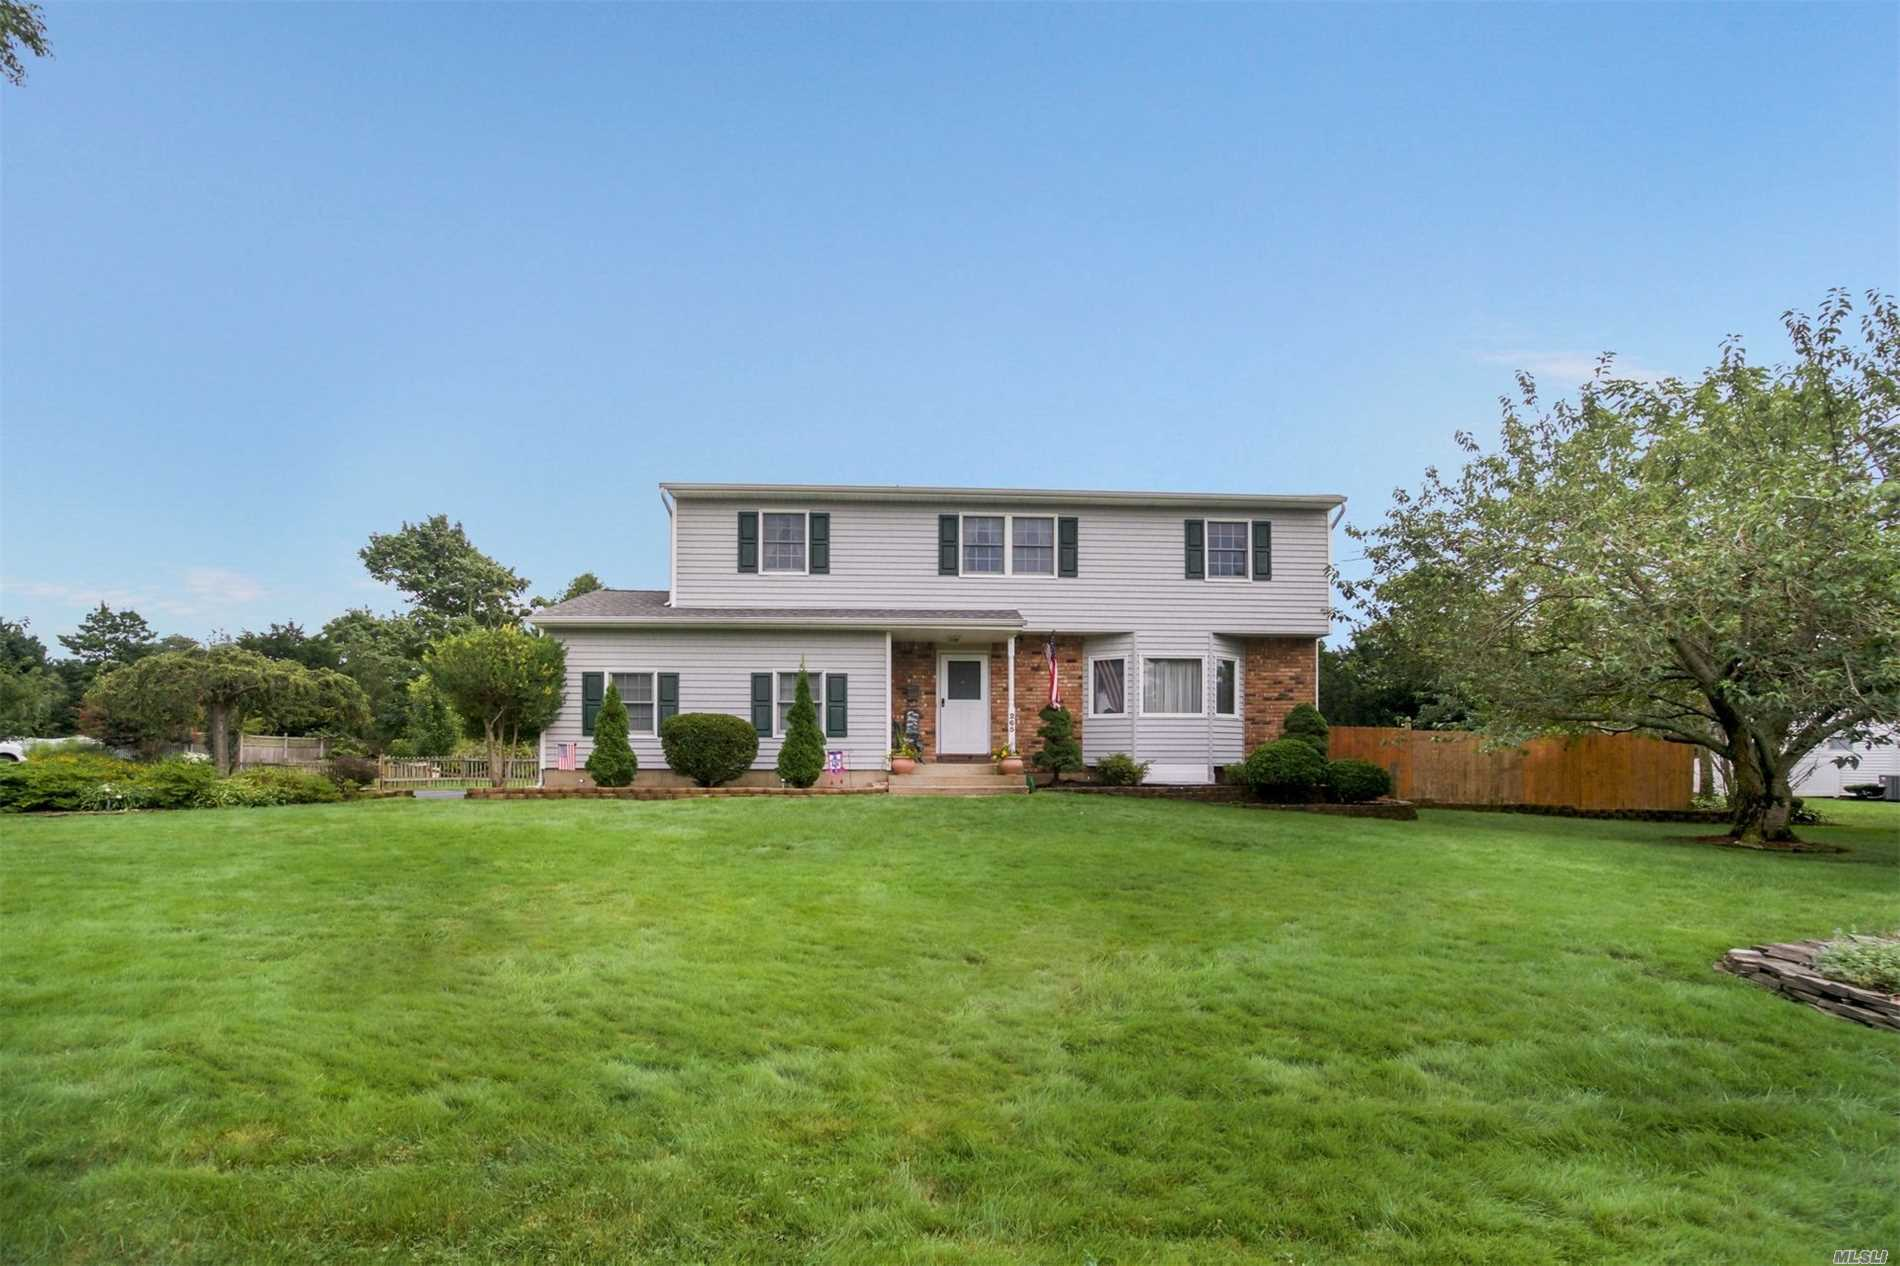 Incredibly Maintained And Pristine Side Hall Colonial Sited On A Beautifully Manicured 1/2 Acre. Meticulous Updates Abound In This 4Br, 2.5Ba Home On A Super Som Cul-De-Sac. New Roof, Siding, Windows, Electric, 4 Zone Gas Heating, Tankless Water Heater, Cac And Appliances, As Well As New Quartz Countertops & Glass B/S. H/W Floors Throughout The House And Radiant Heat In The Family Room That Features A Pretty Brick Fireplace. Two Tier Decking Across The Back House + Plenty Of Room For A Pool!